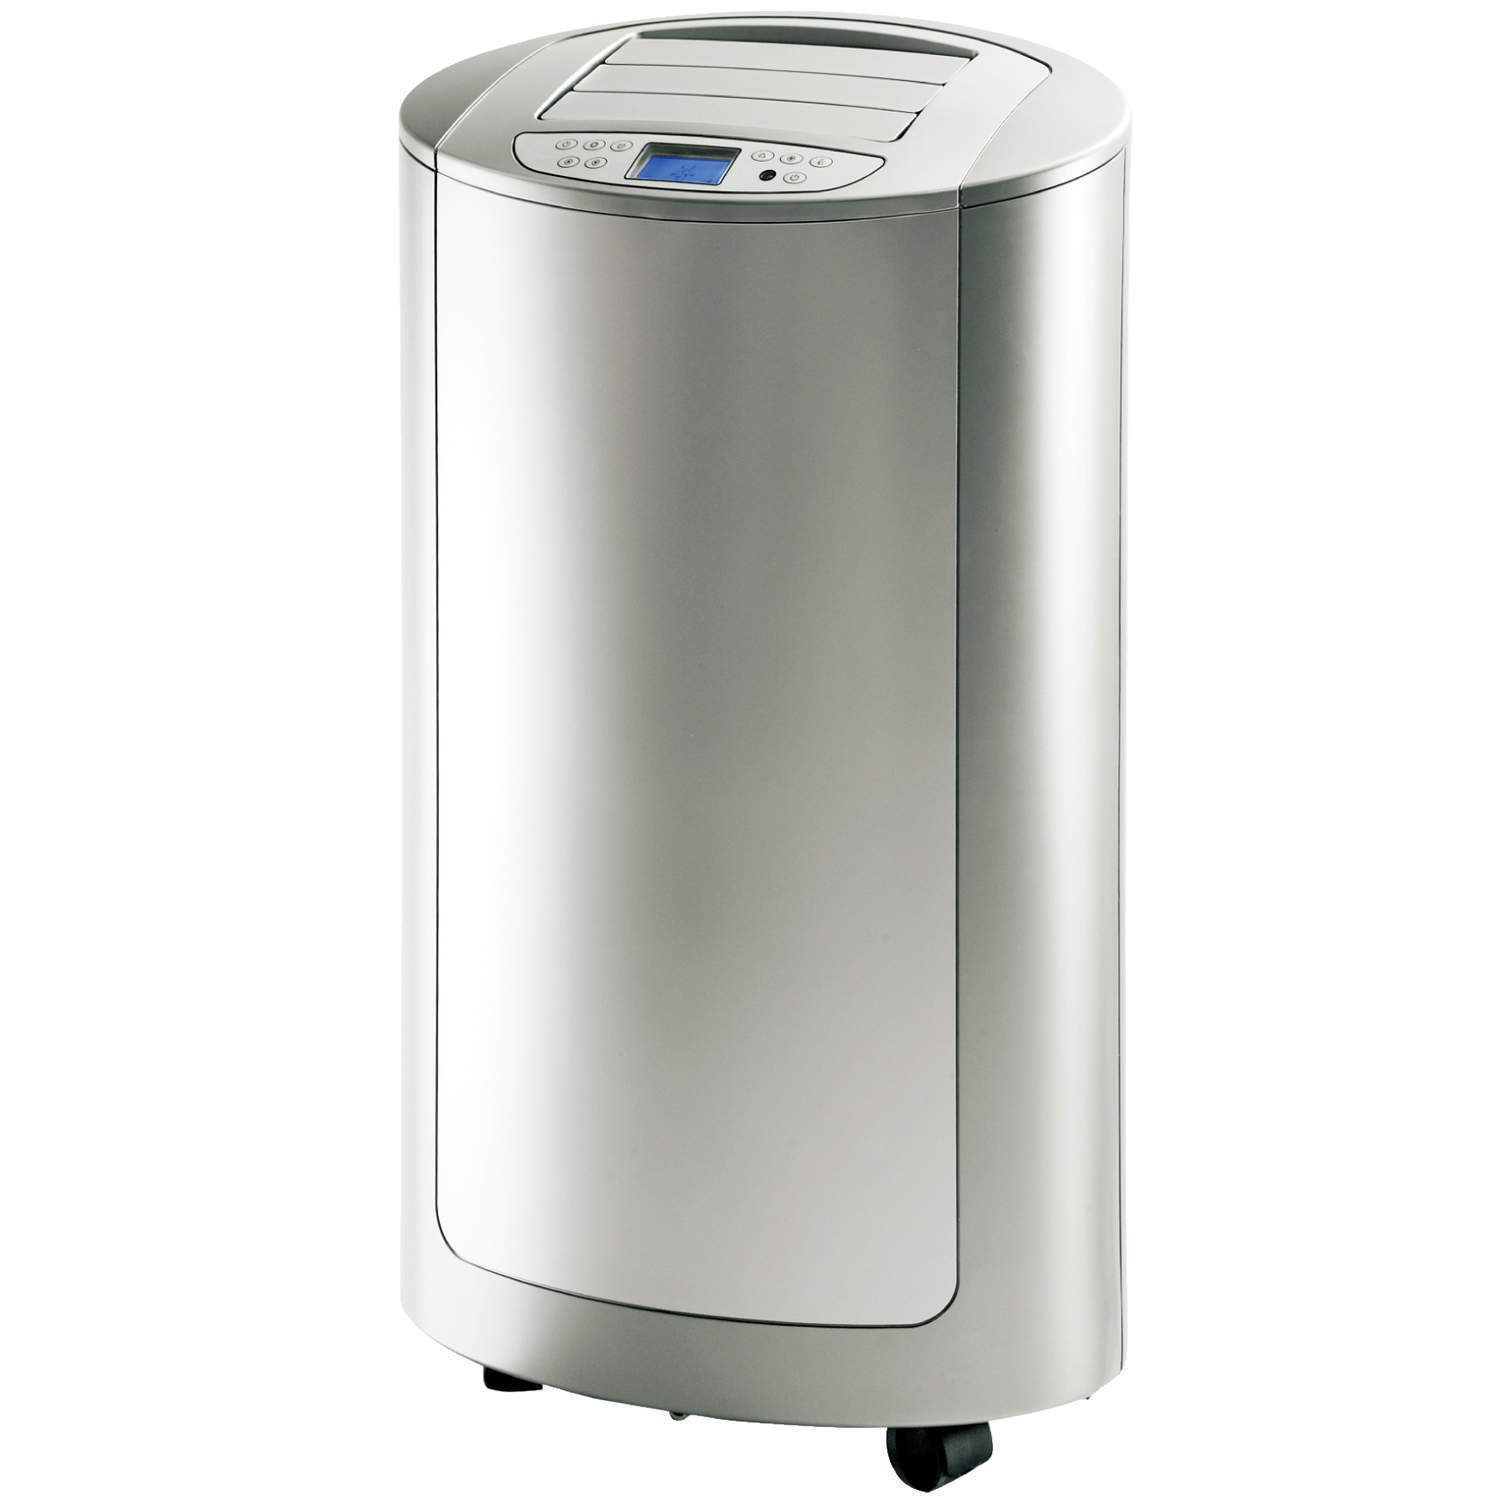 12000 btu portable air conditioner mobile air conditioning for 12000 btu ac heater window unit